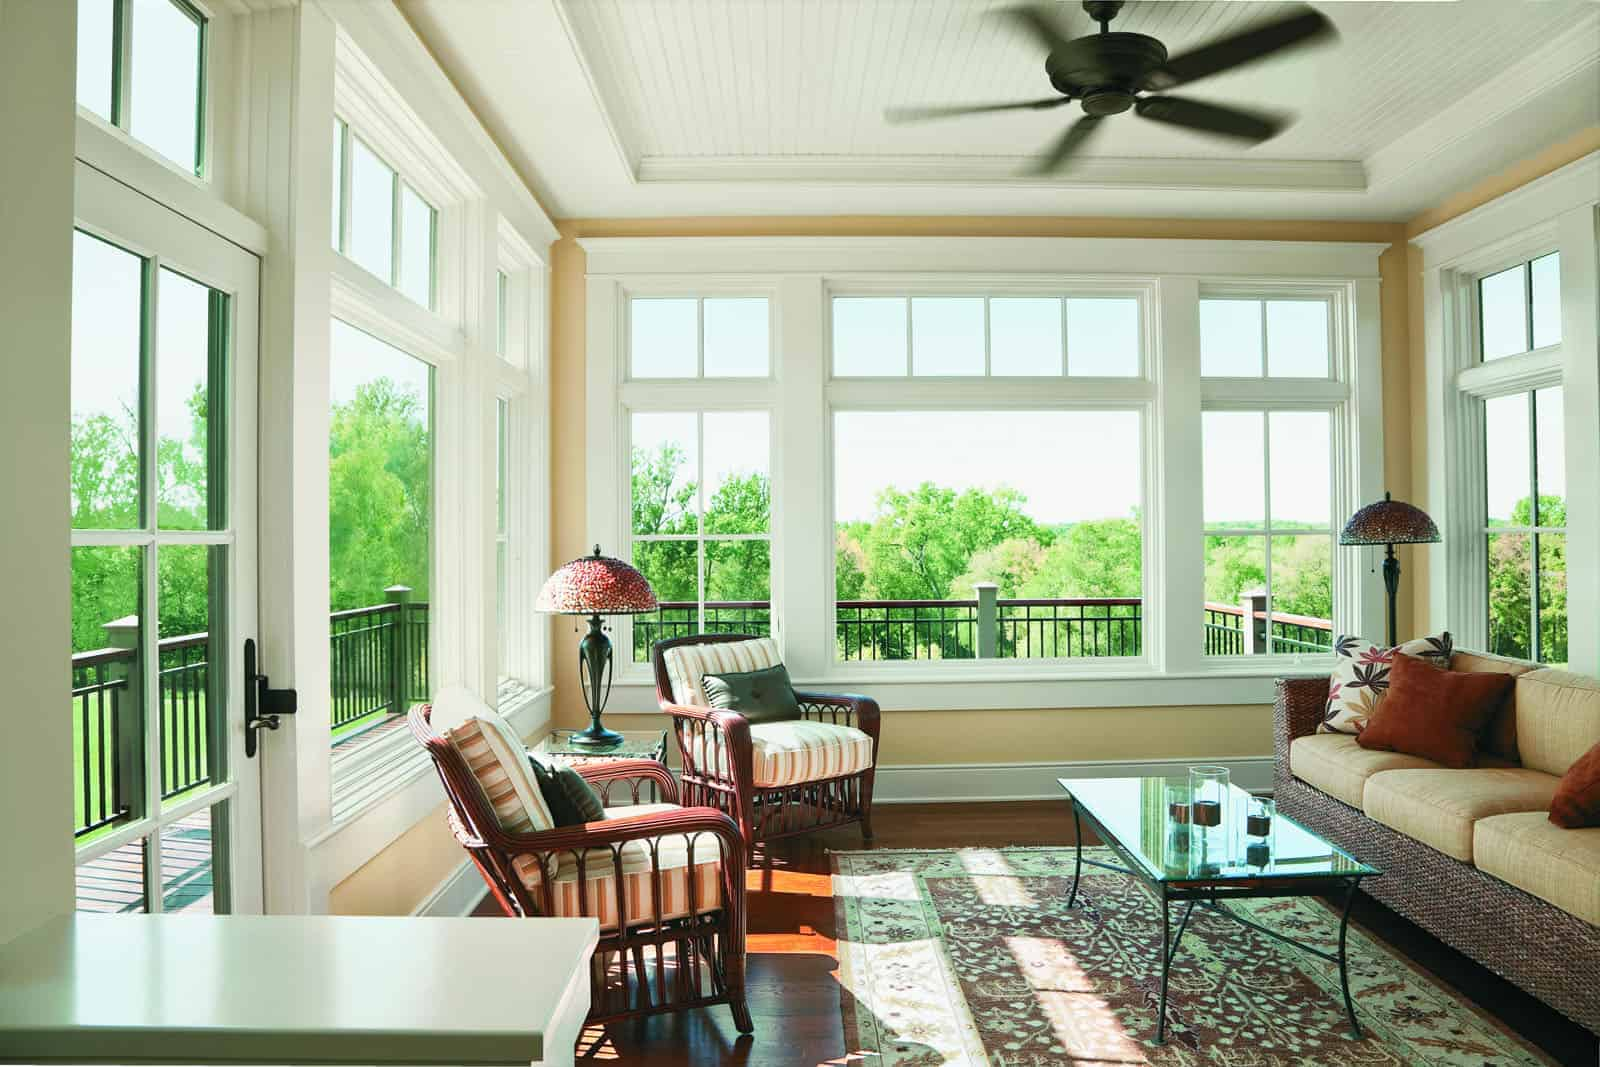 Wood windows line walls of residential home's sunroom